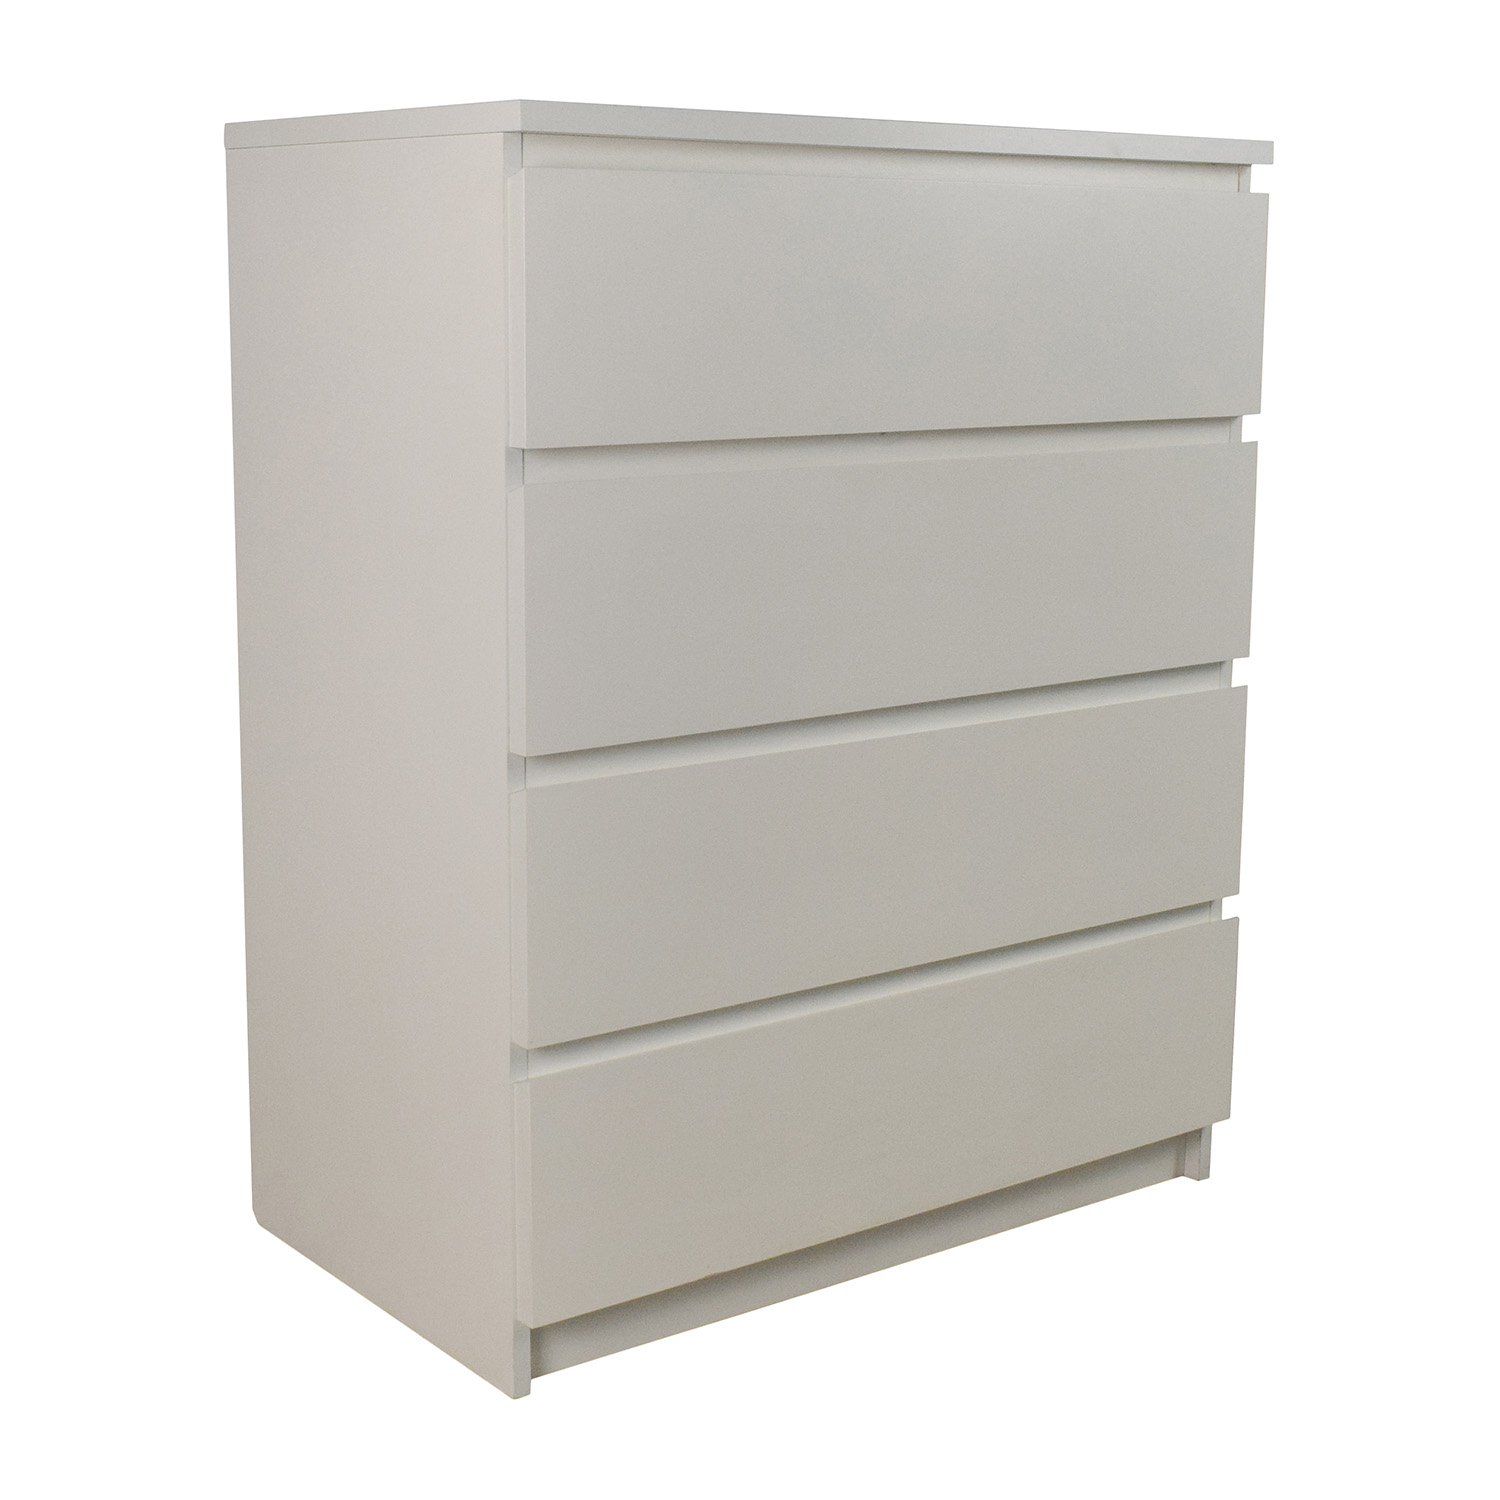 32% OFF - IKEA IKEA MALM 4-Drawer Dresser / Storage